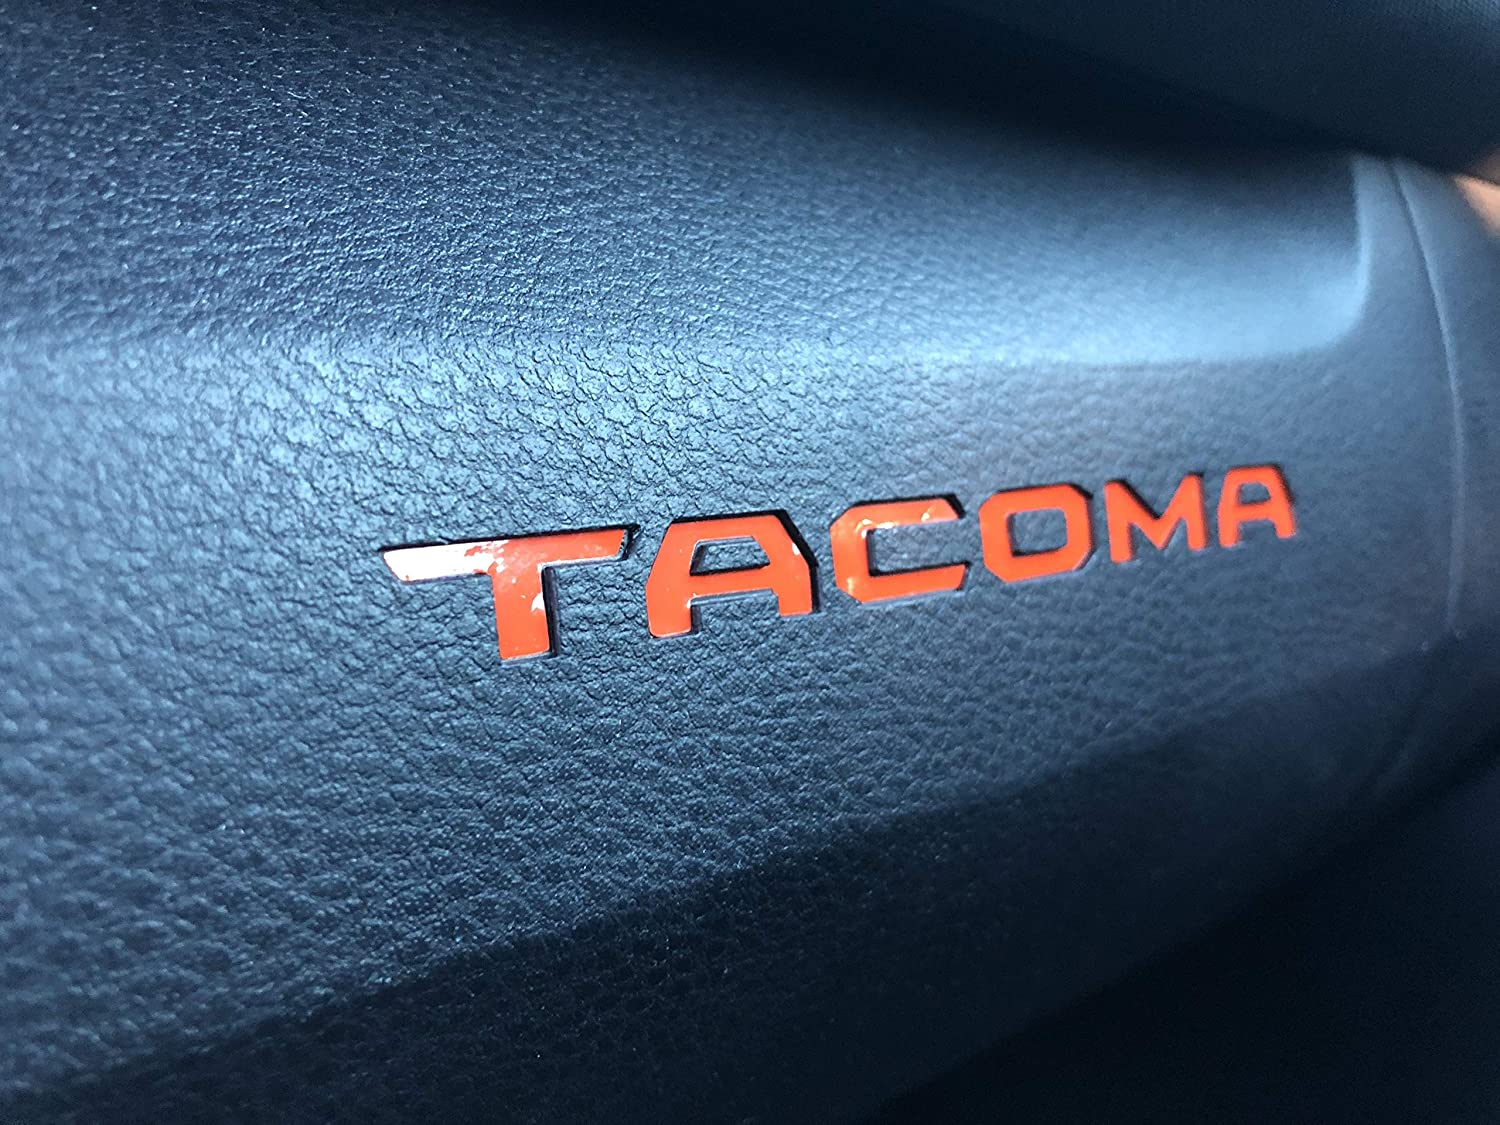 Spartan Off Road Glove Box Vinyl Decal Inserts - Compatible with All 2016-2020 Toyota Tacoma Models